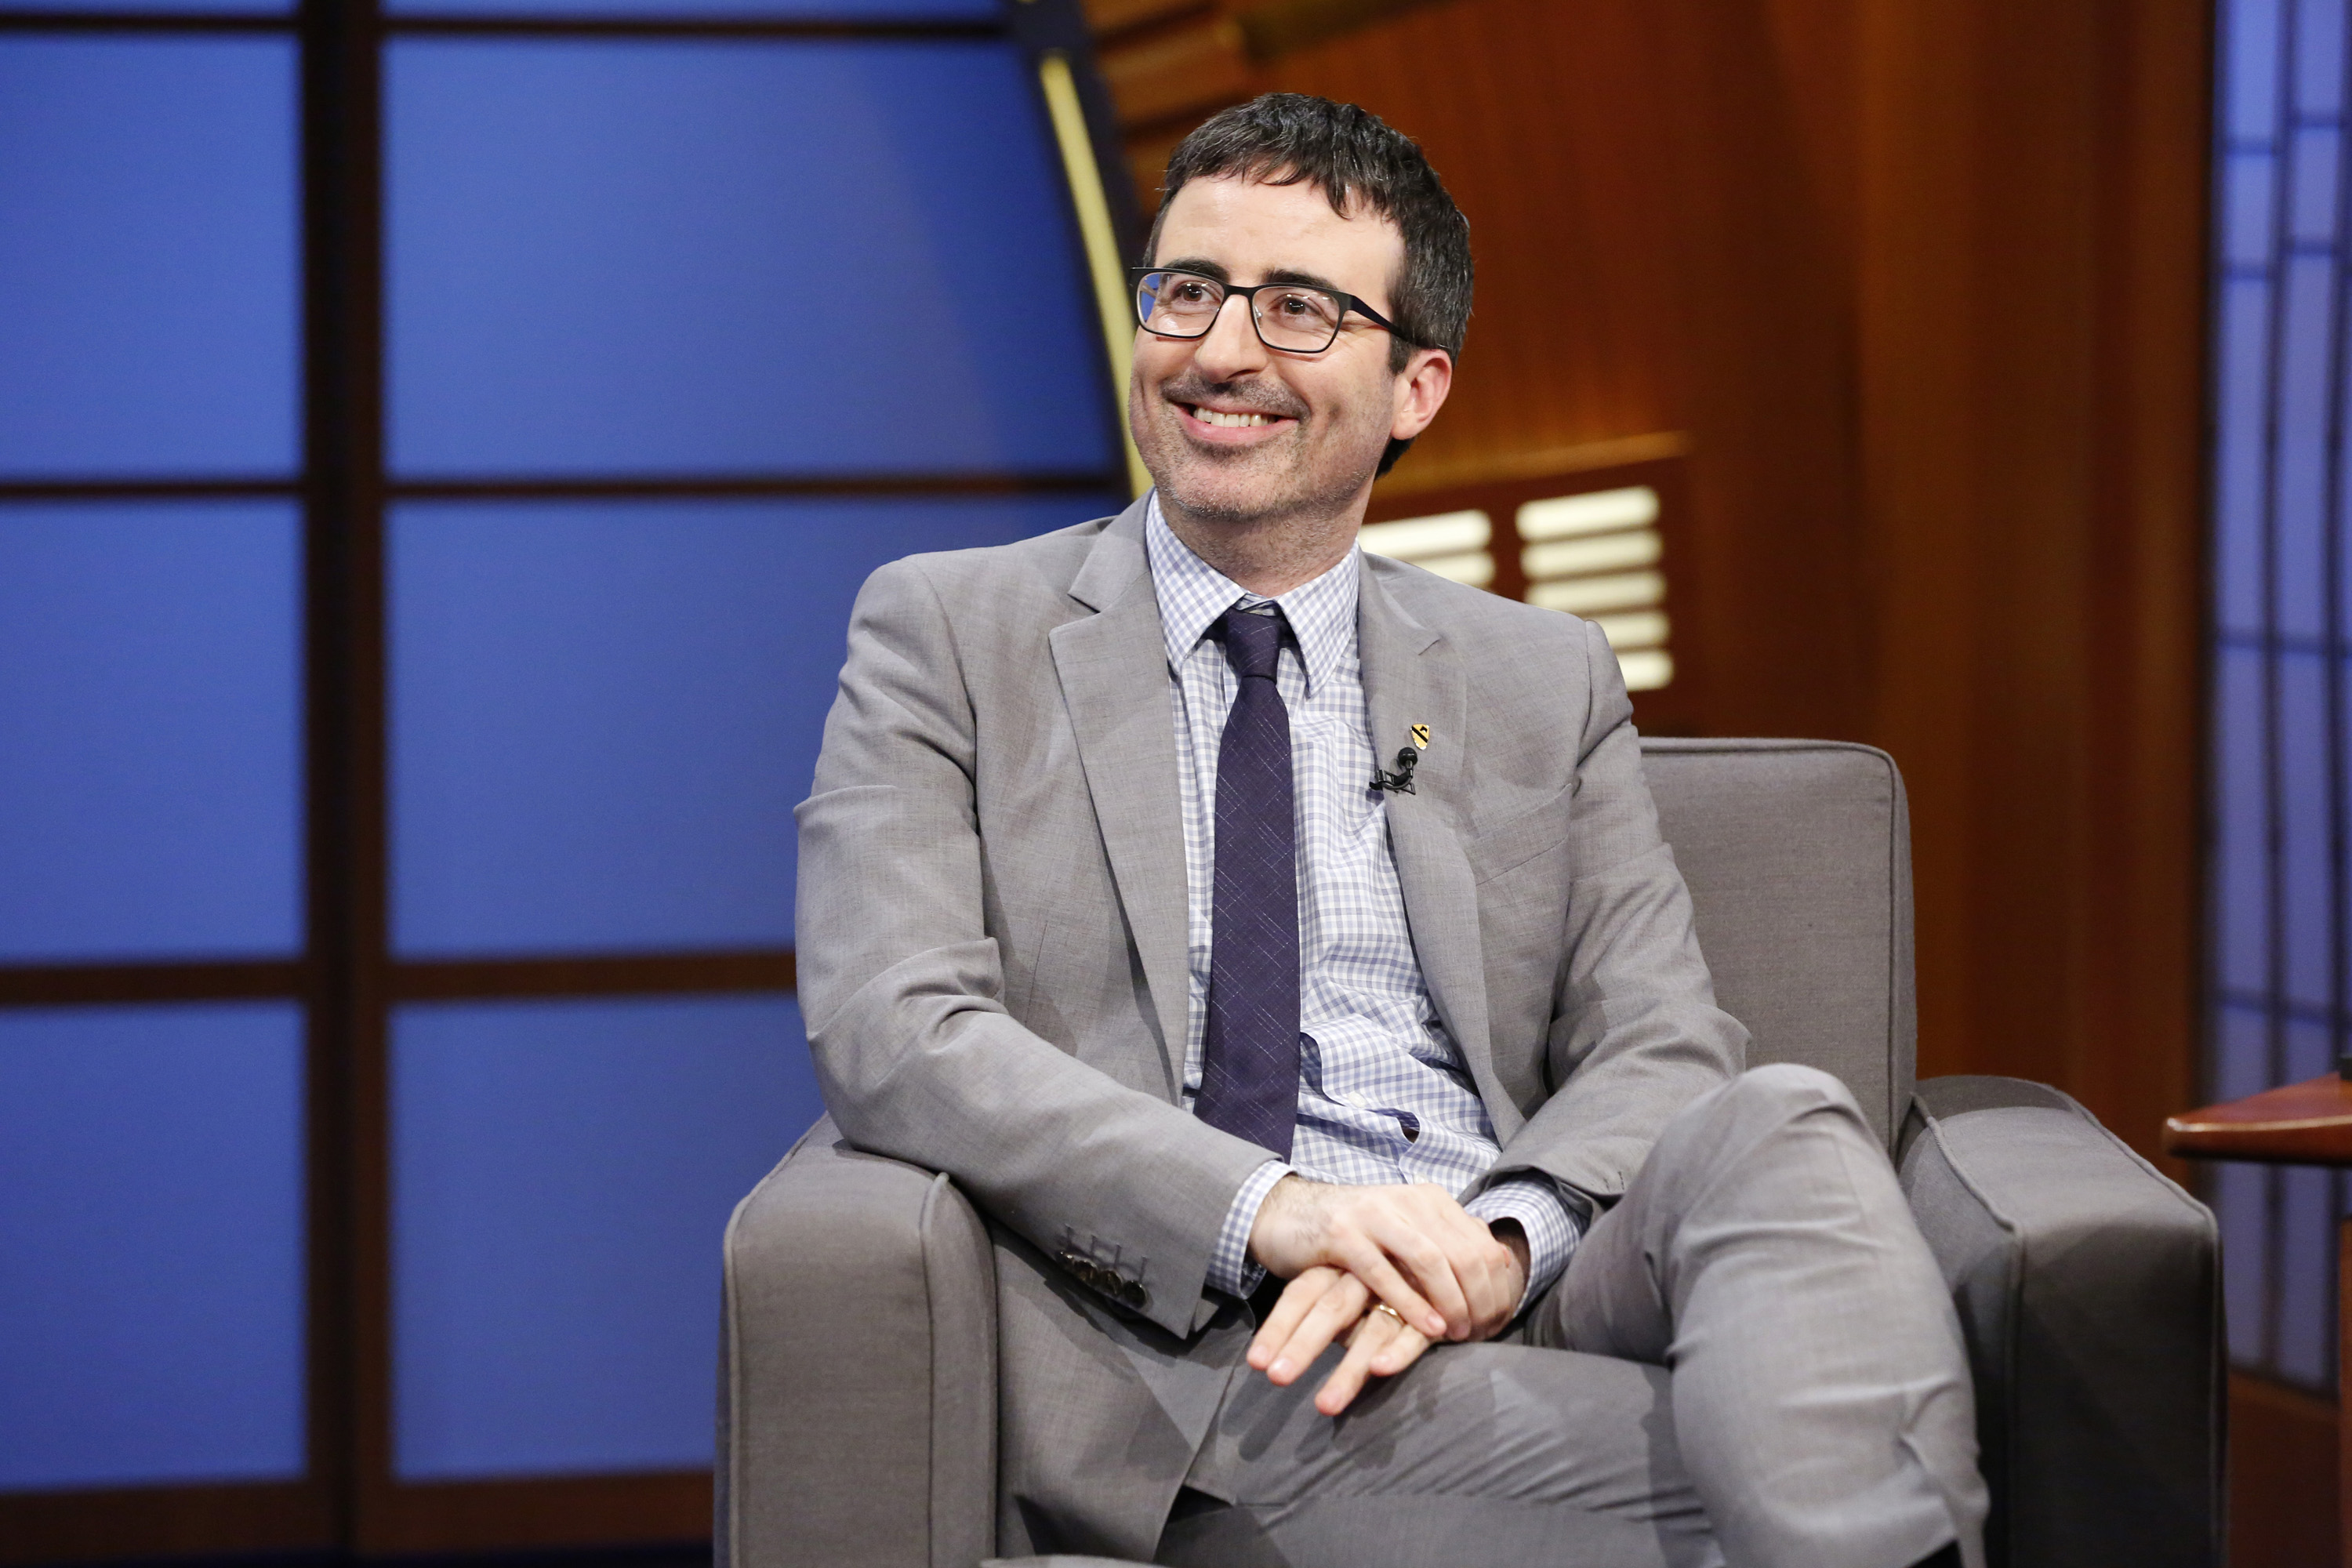 Comedian John Oliver during an interview on June 11, 2014.